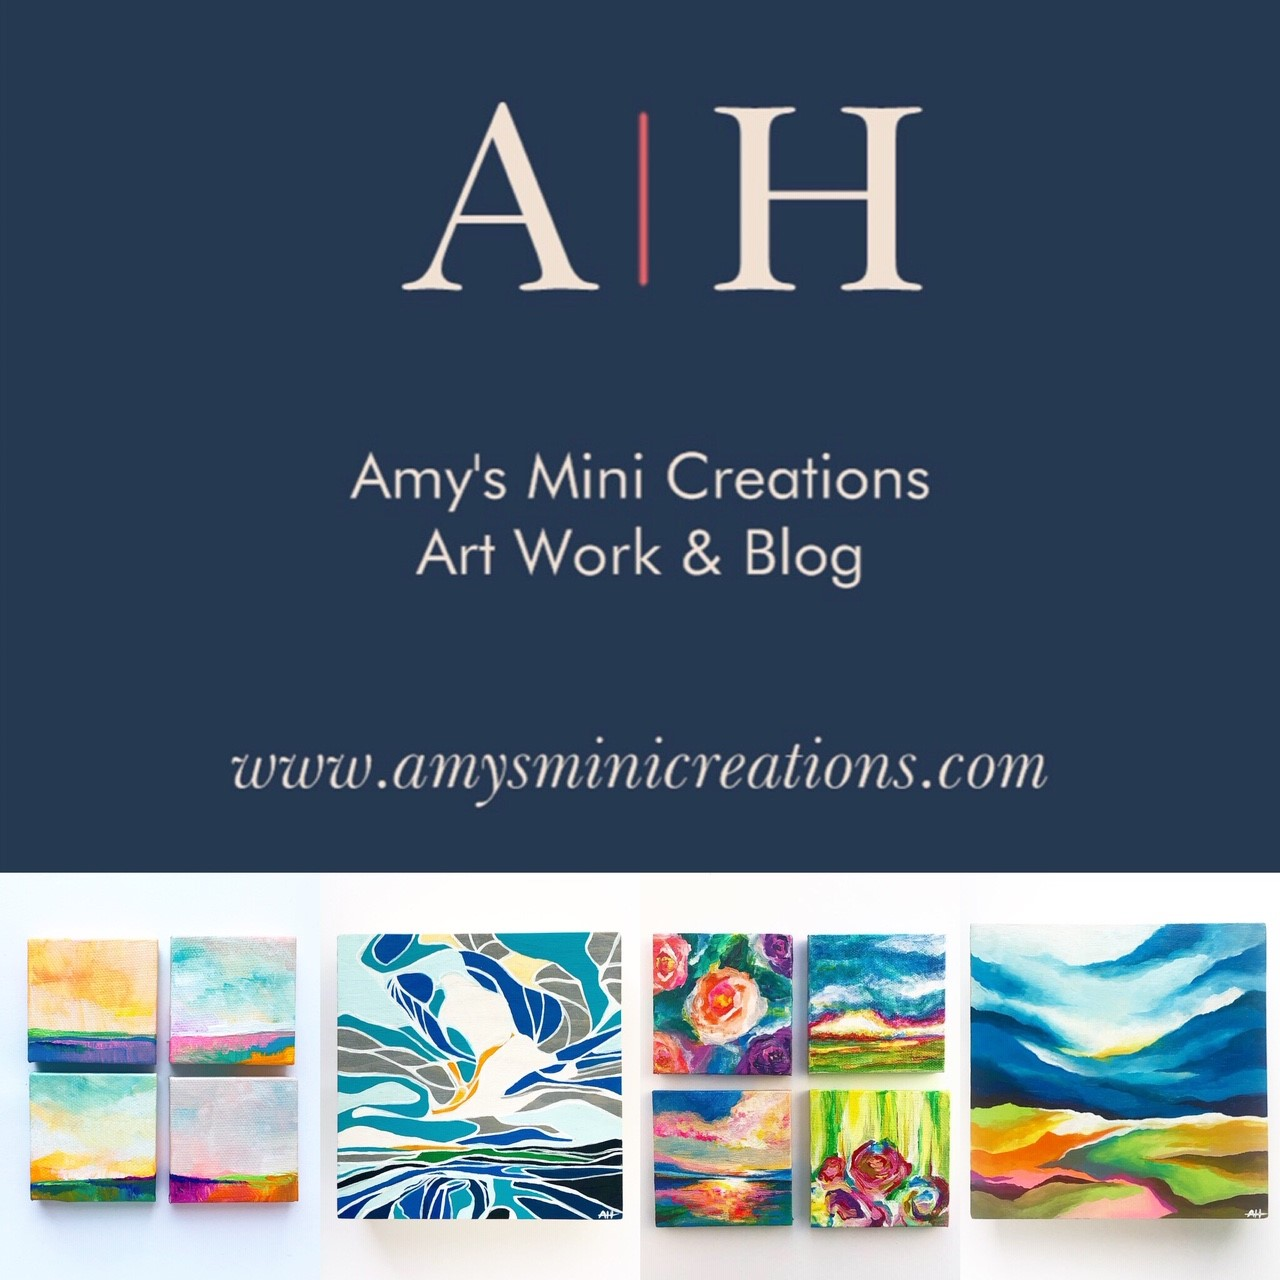 Amy's Mini Creations